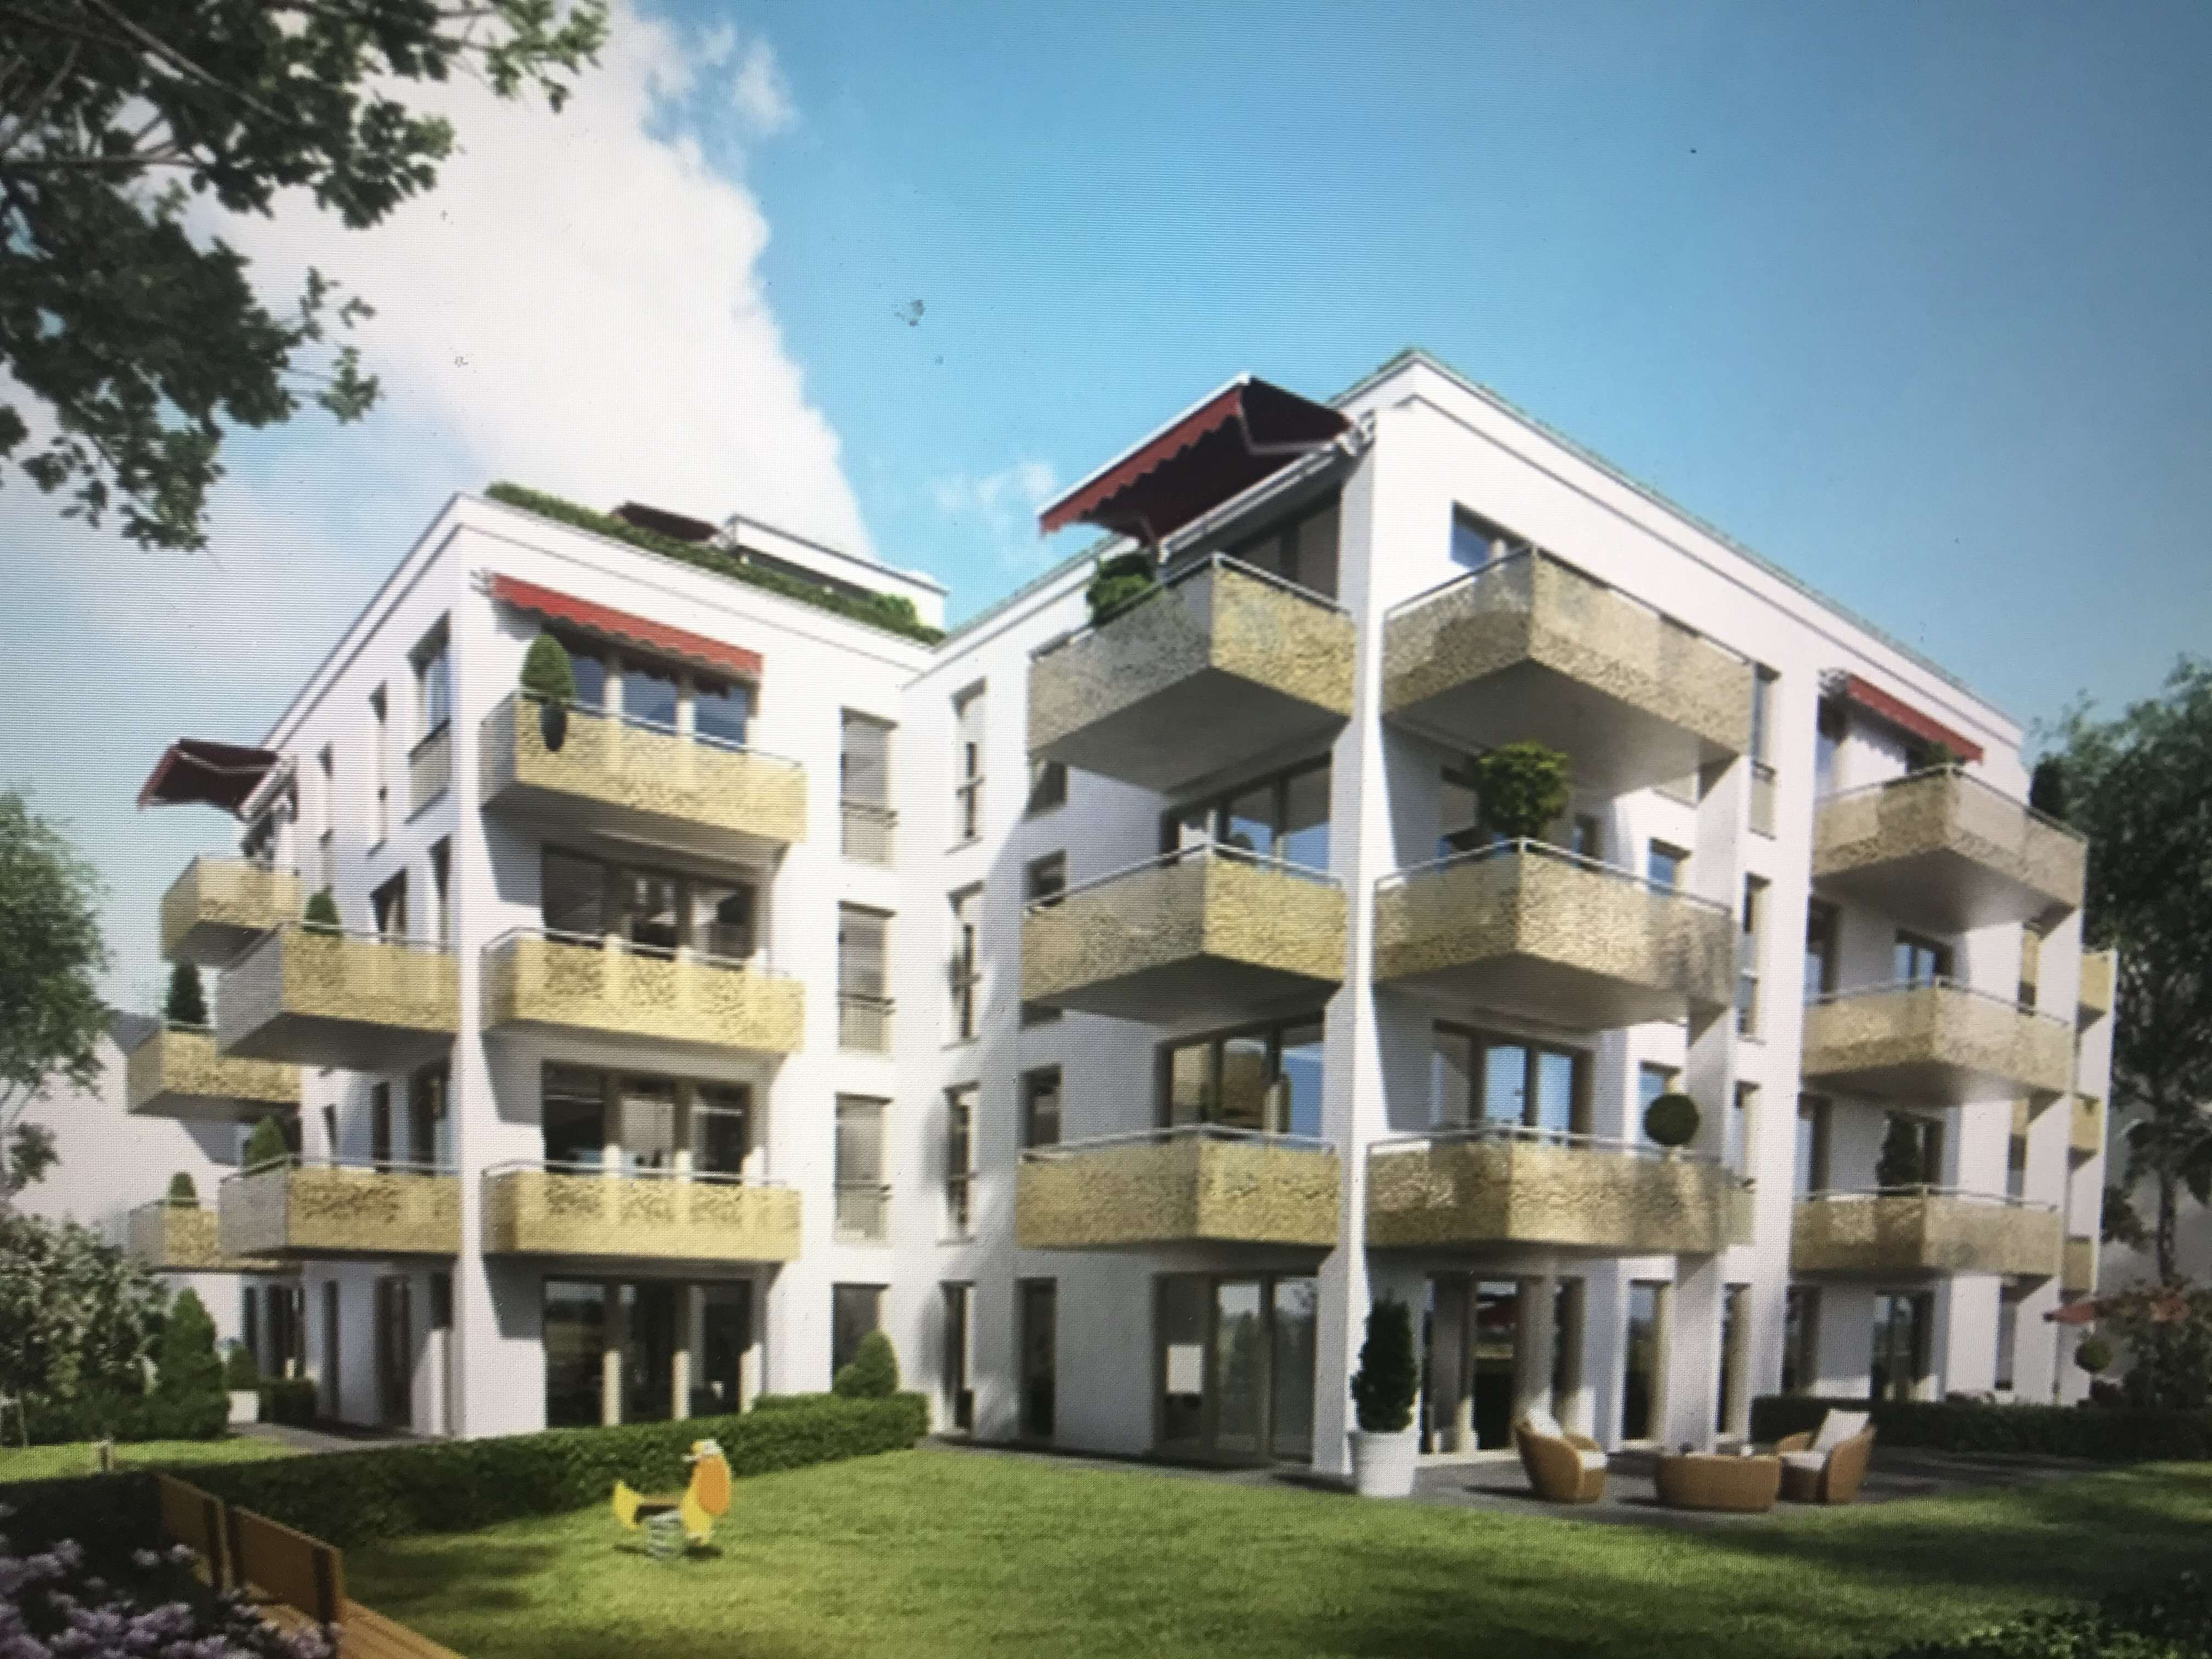 Furnished Apartment for up to 3 adults ( also suiteable for co living) - Central - brandnew - 75 sqm in